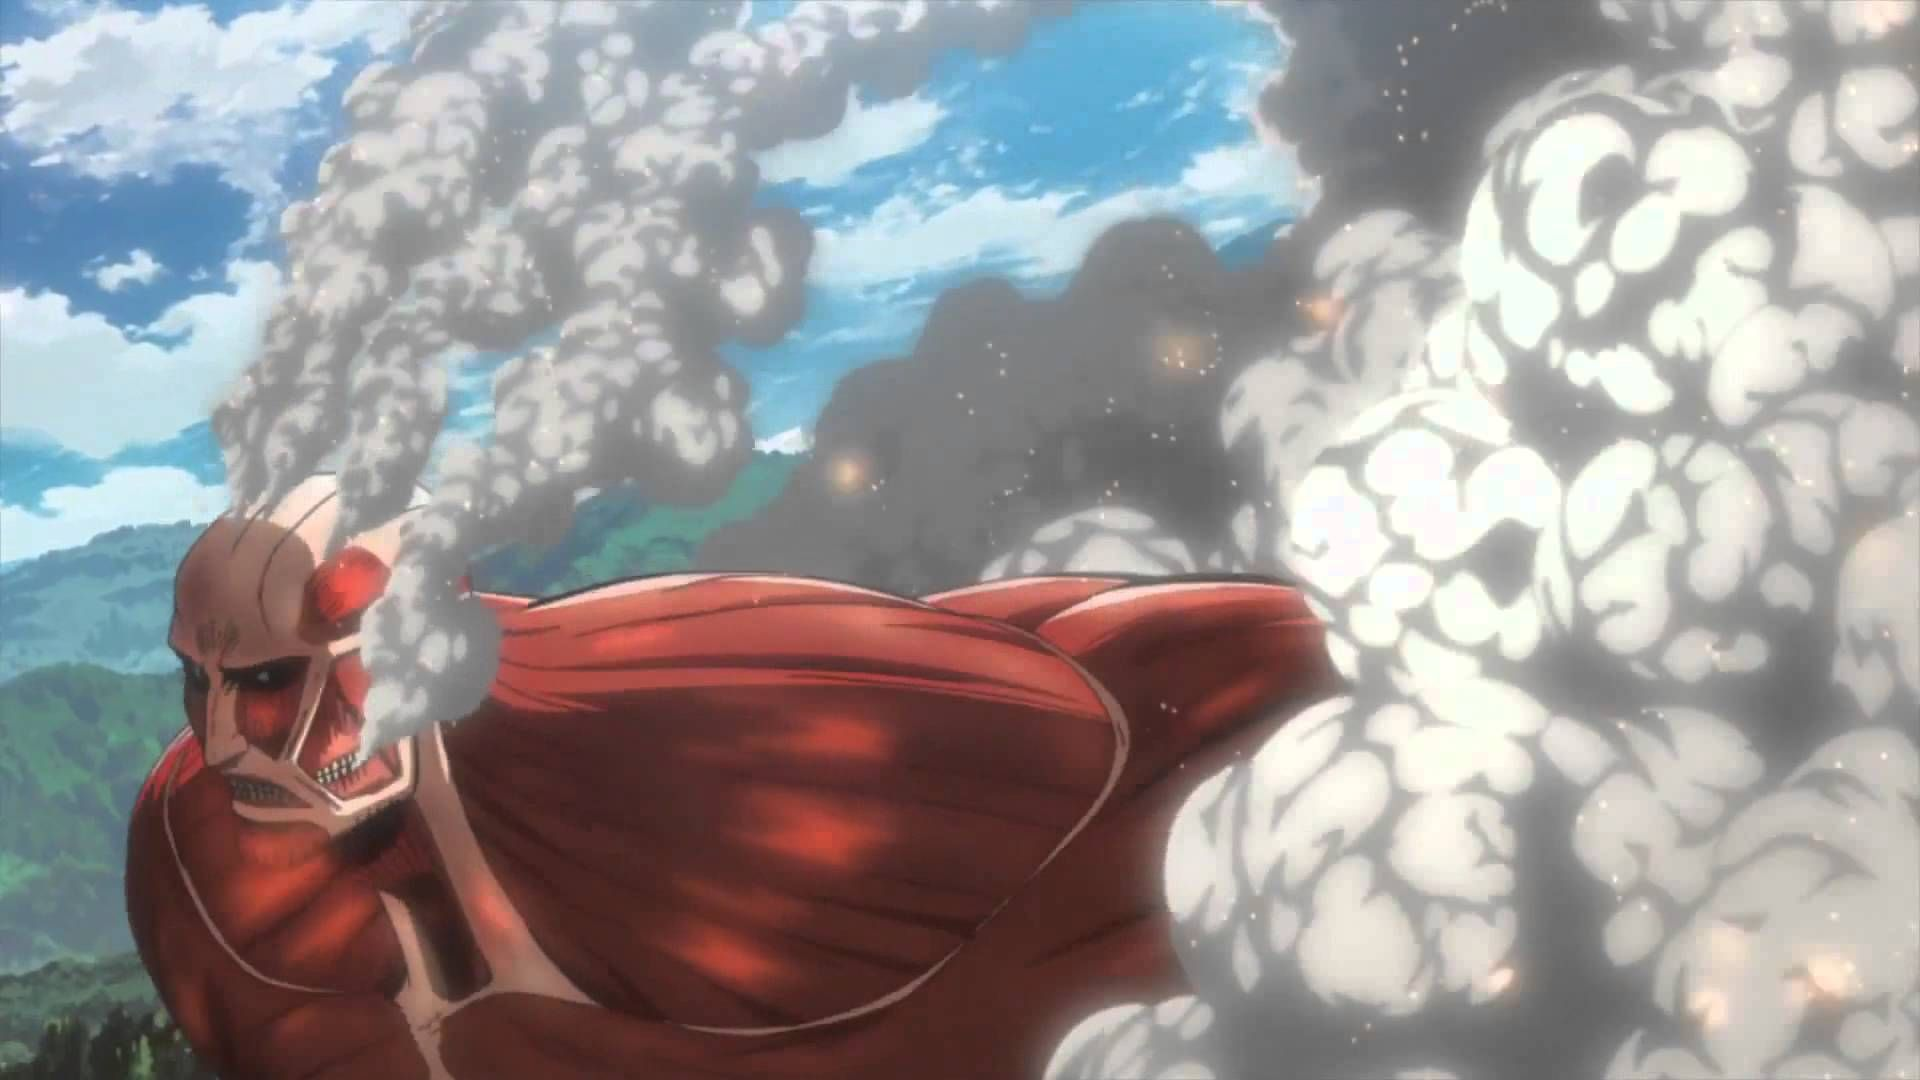 Attack on titan trailer best anime shows attack on